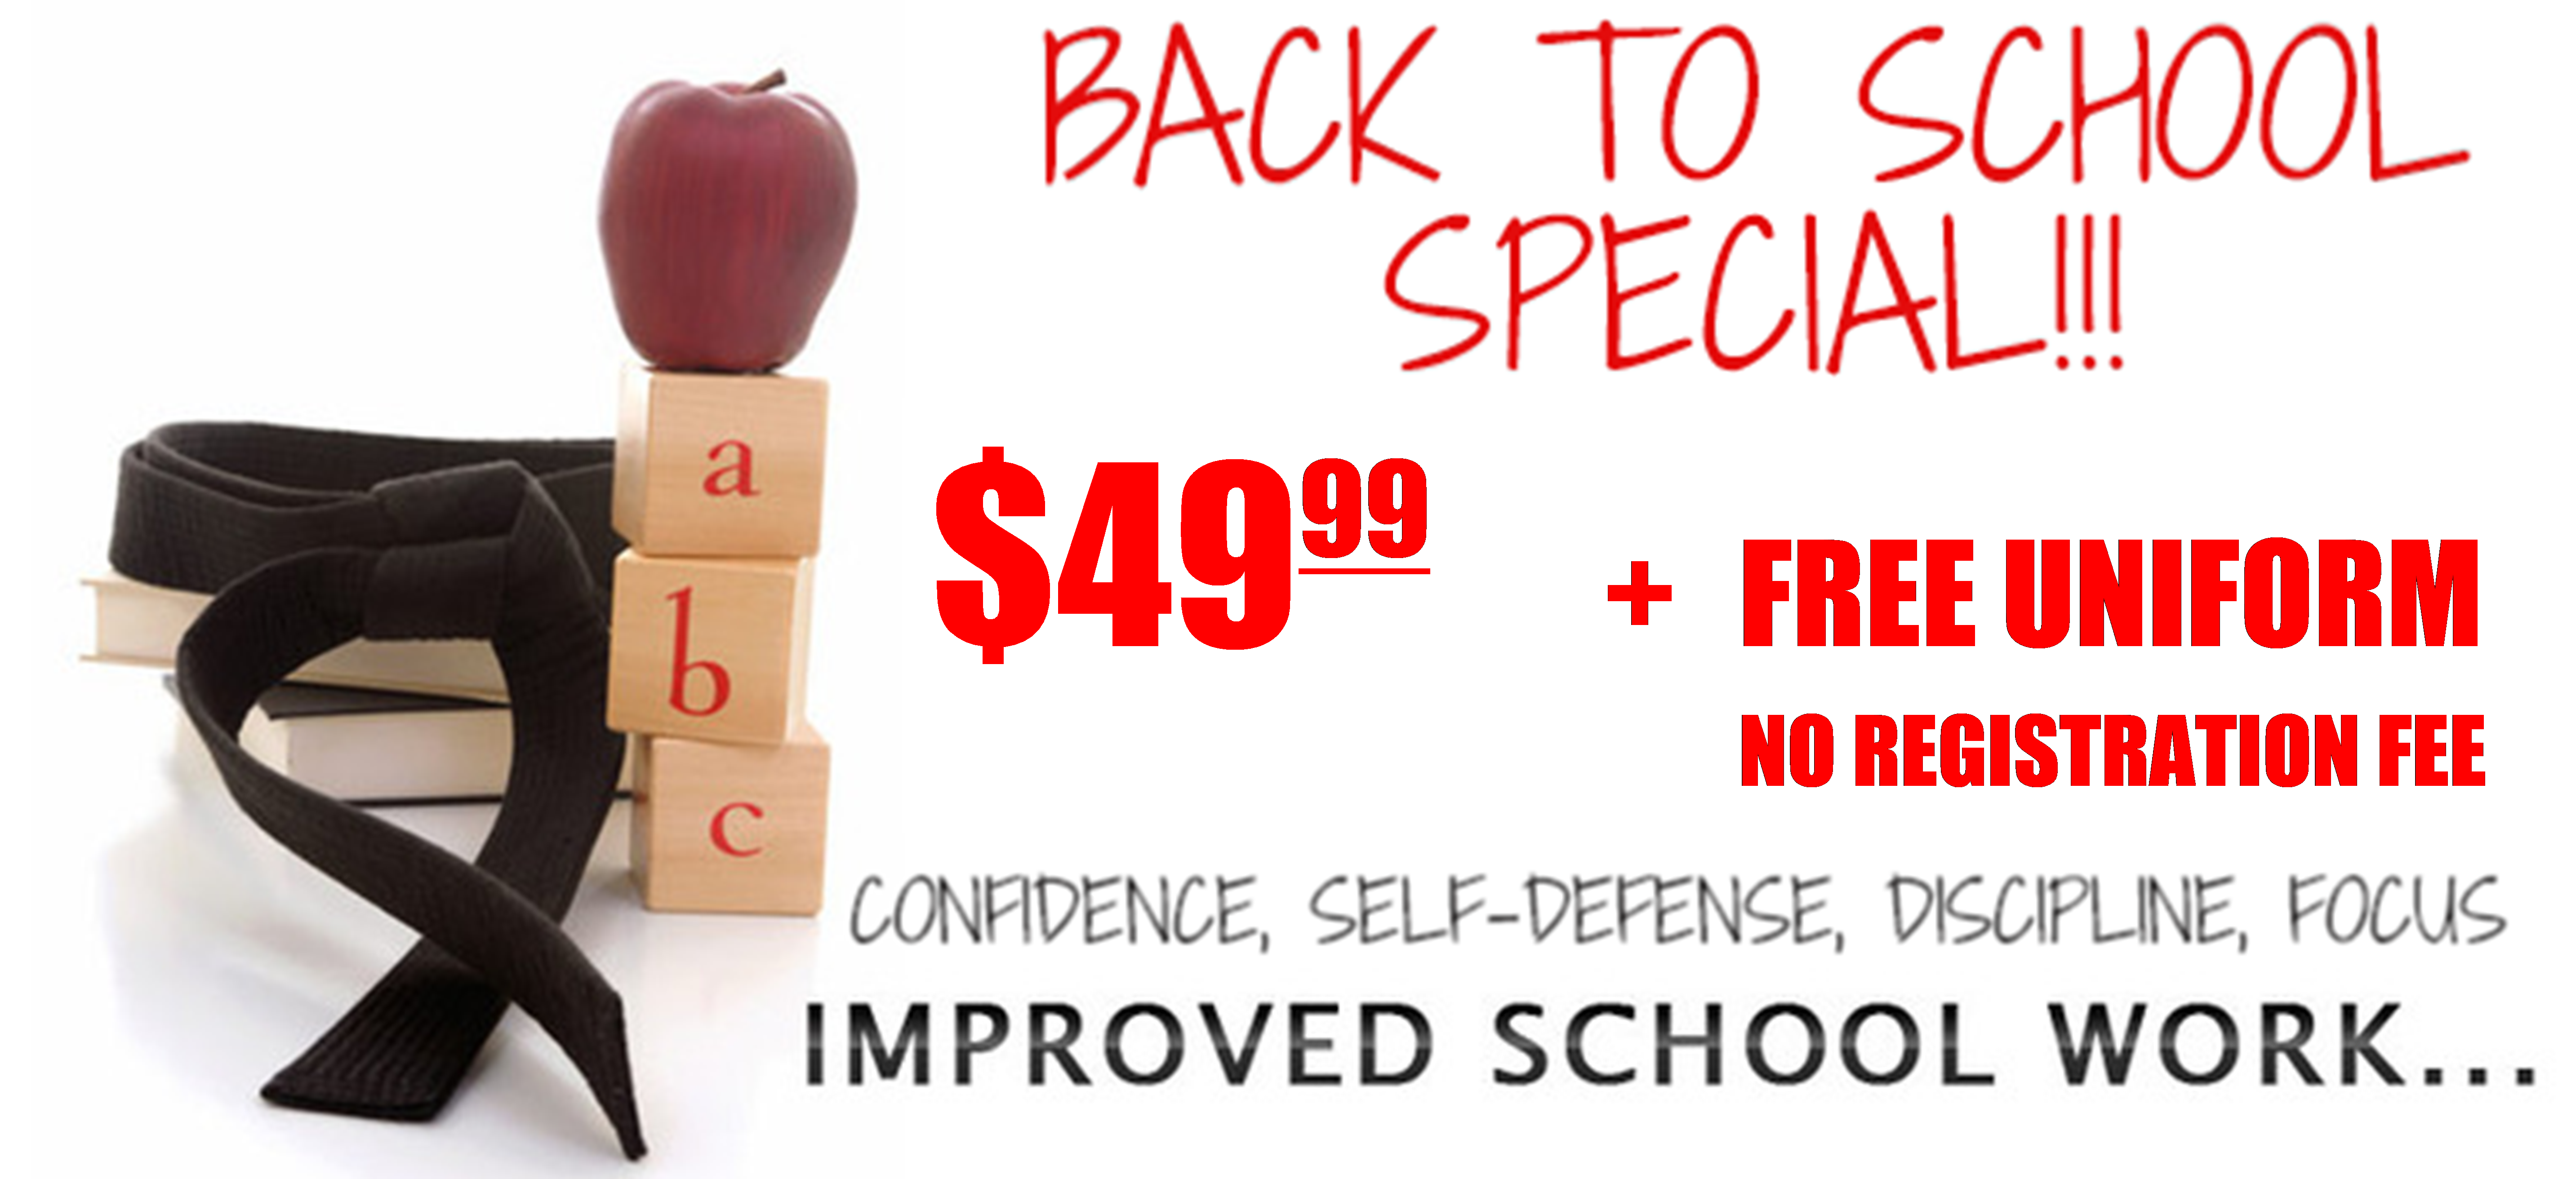 Back to School Special - 2018